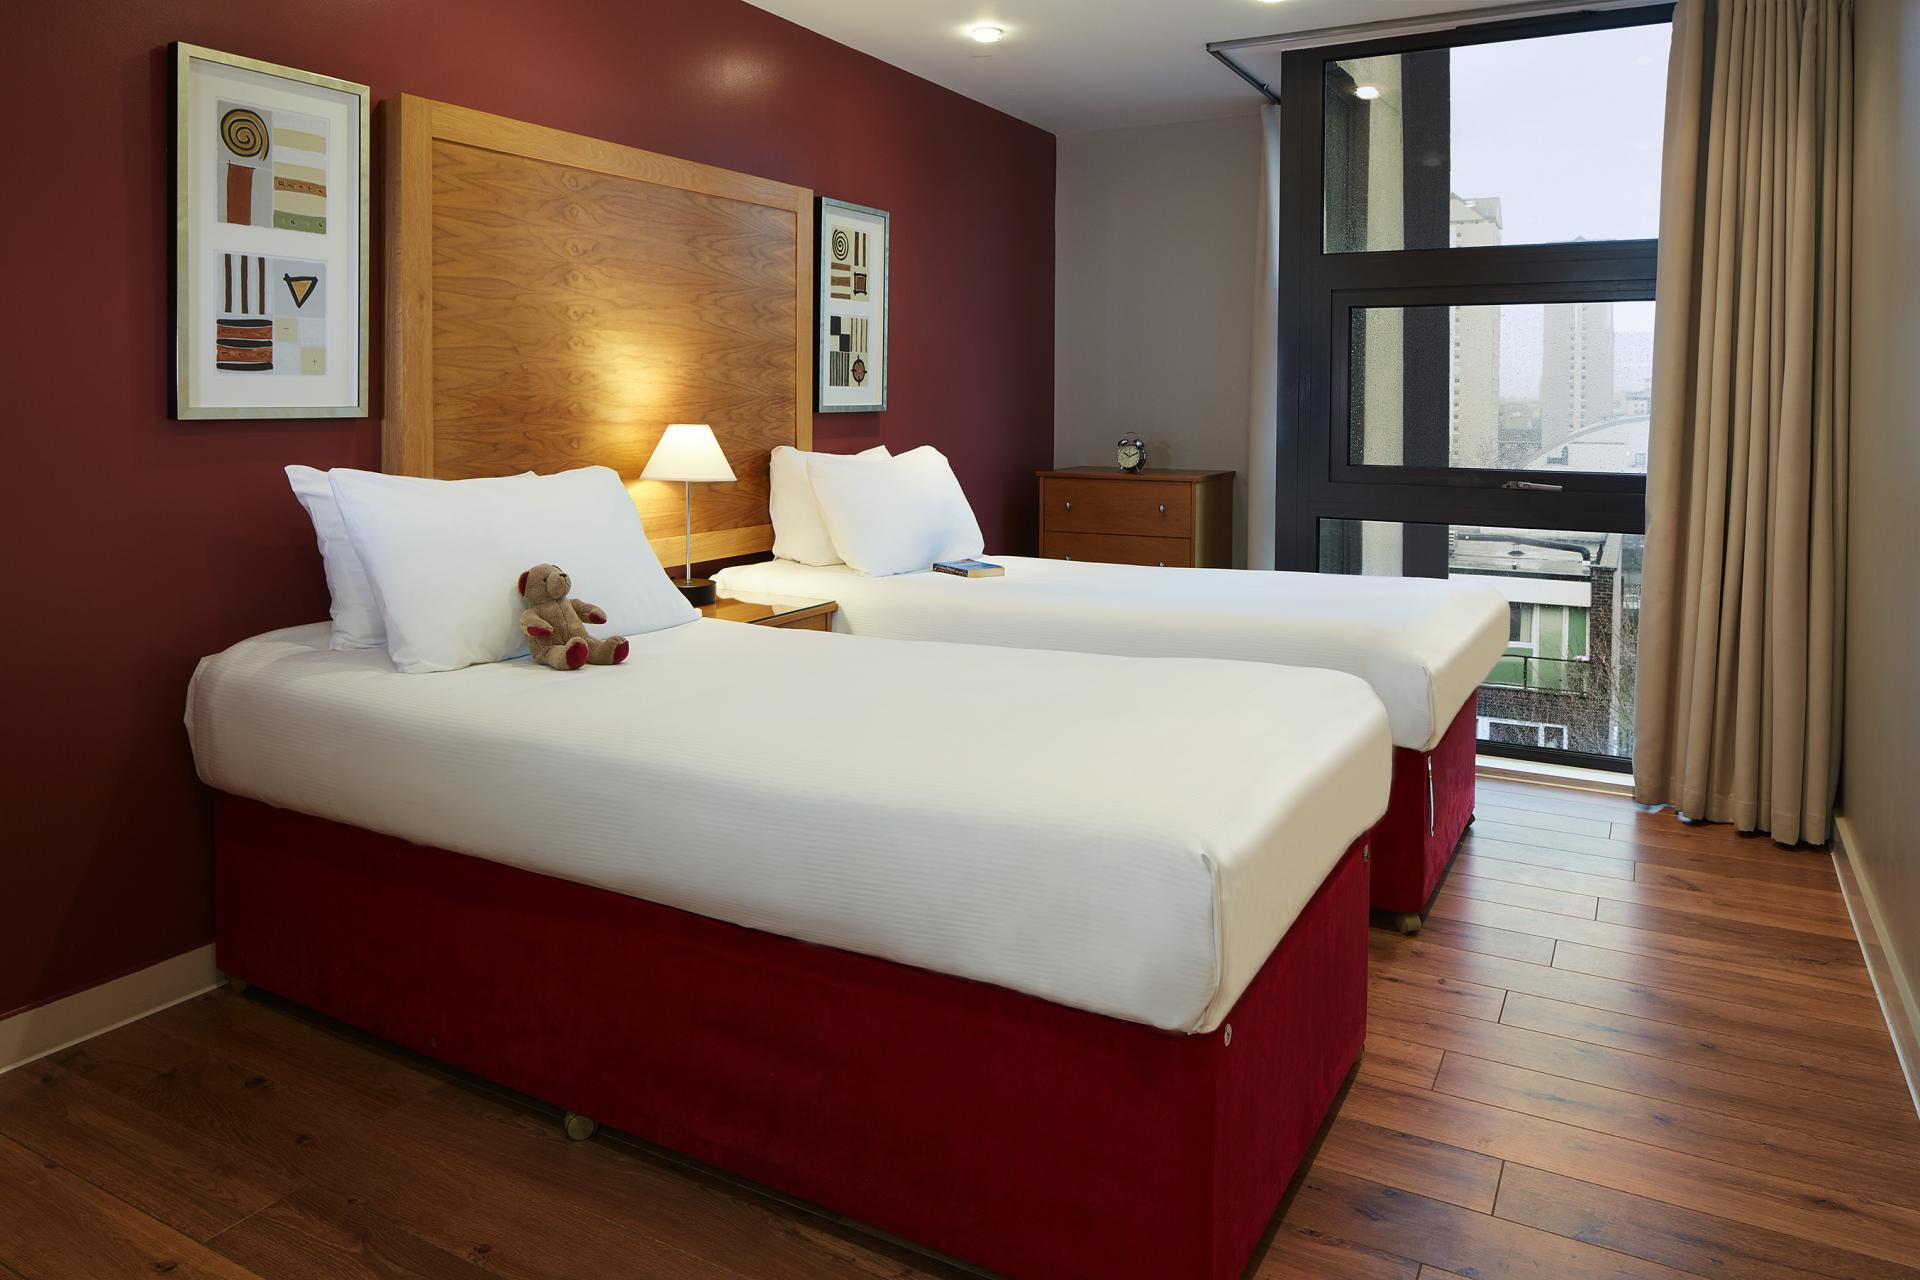 Beds at Marlin Canary Wharf Apartments, Canary Wharf, London - Citybase Apartments